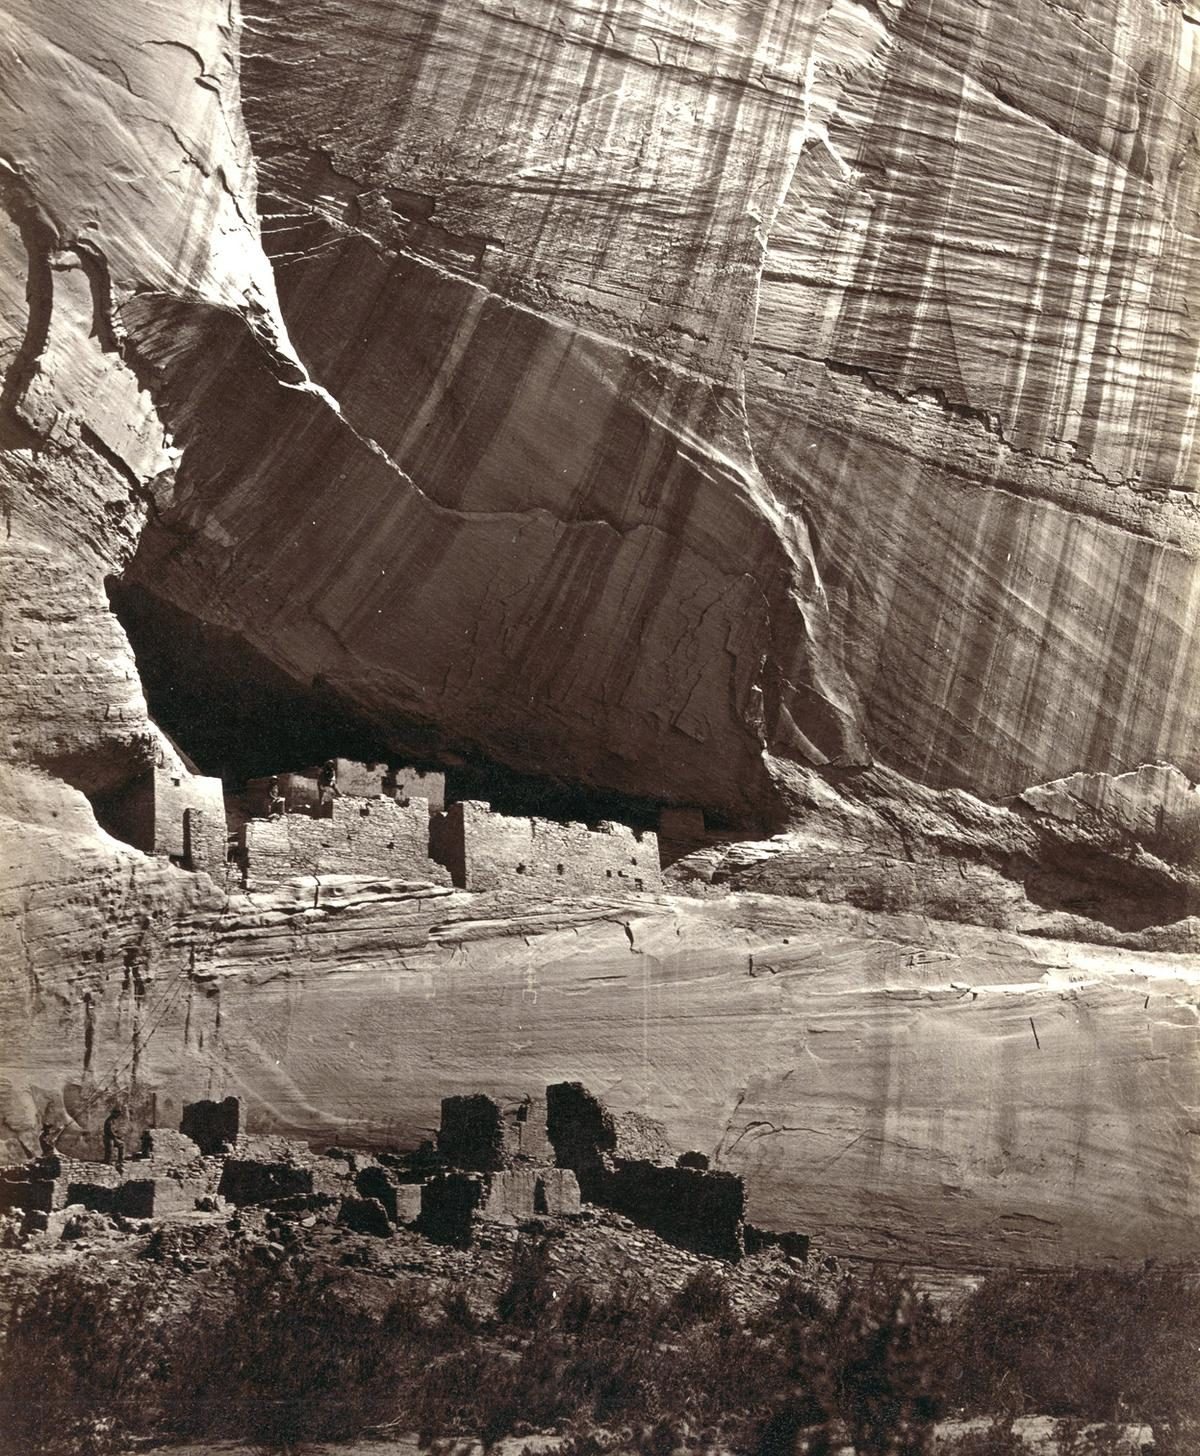 White House, Ancestral Pueblo Native American (Anasazi) ruins in Canyon de Chelly, Arizona, in 1873. The cliff dwellings were built by the Anasazi more than 500 years earlier